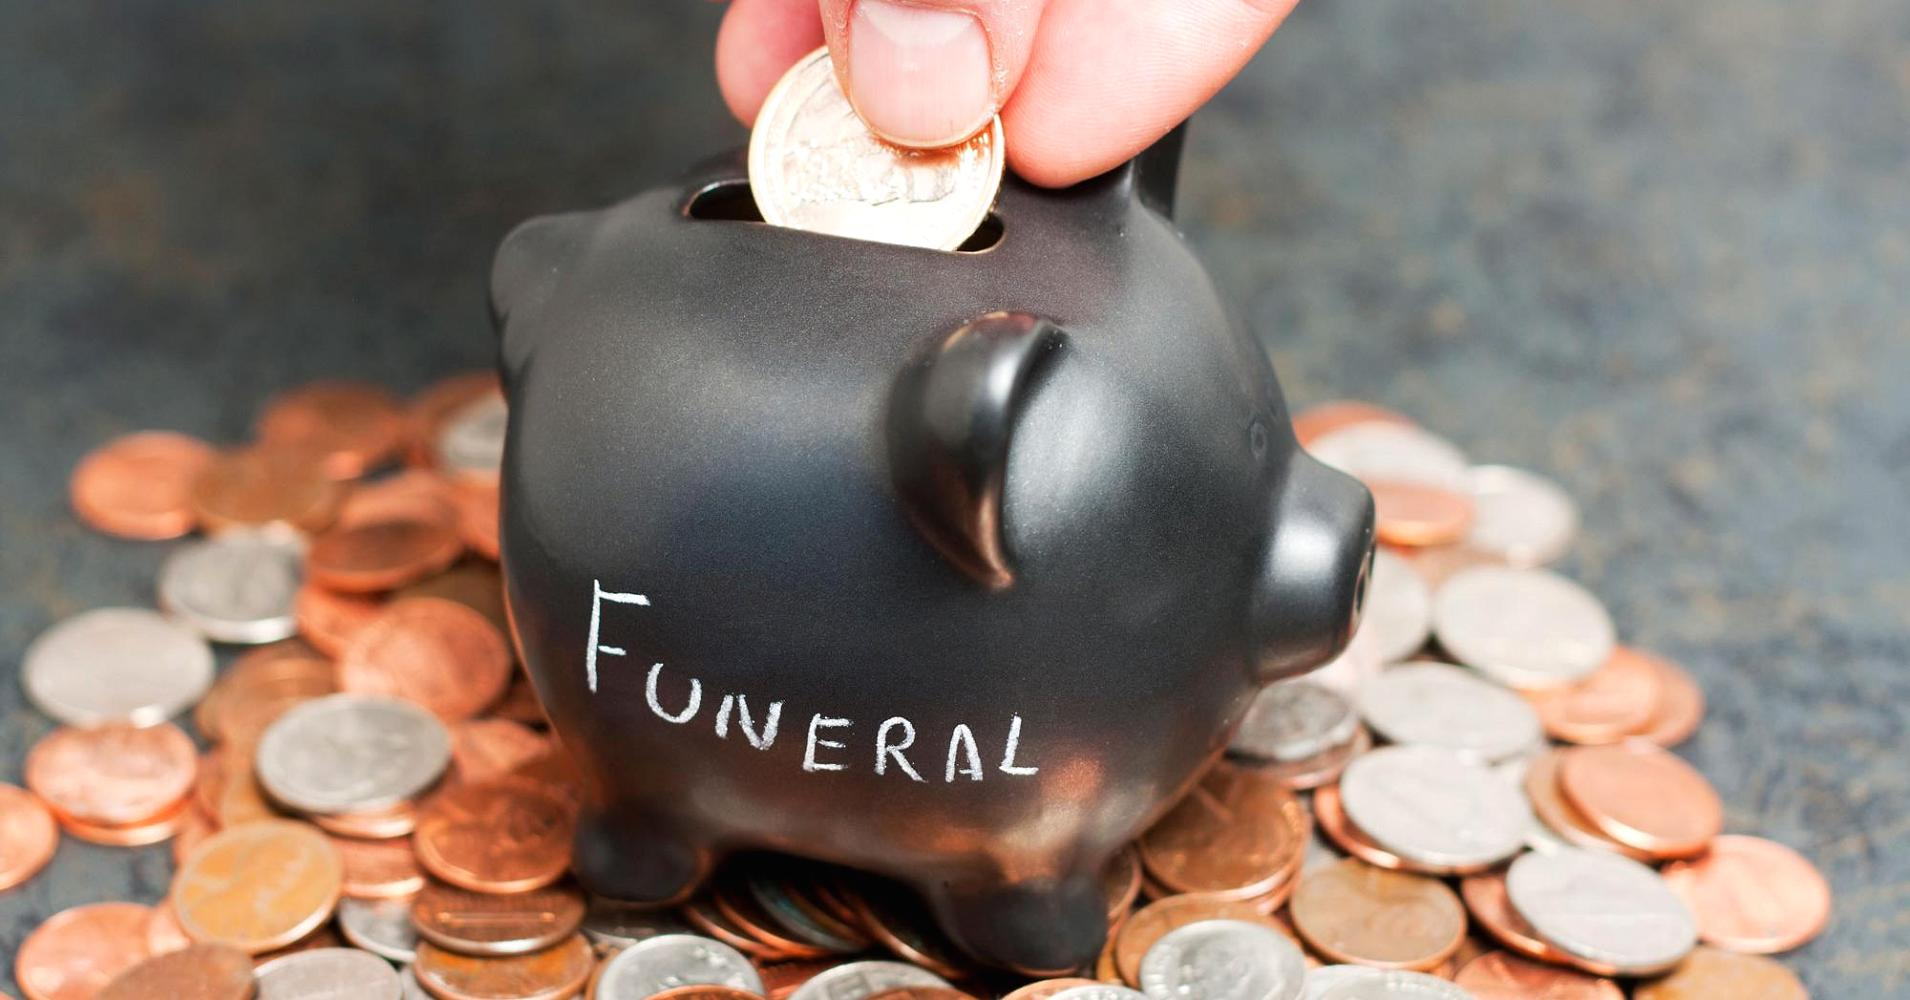 Avoiding funeral cost scandals